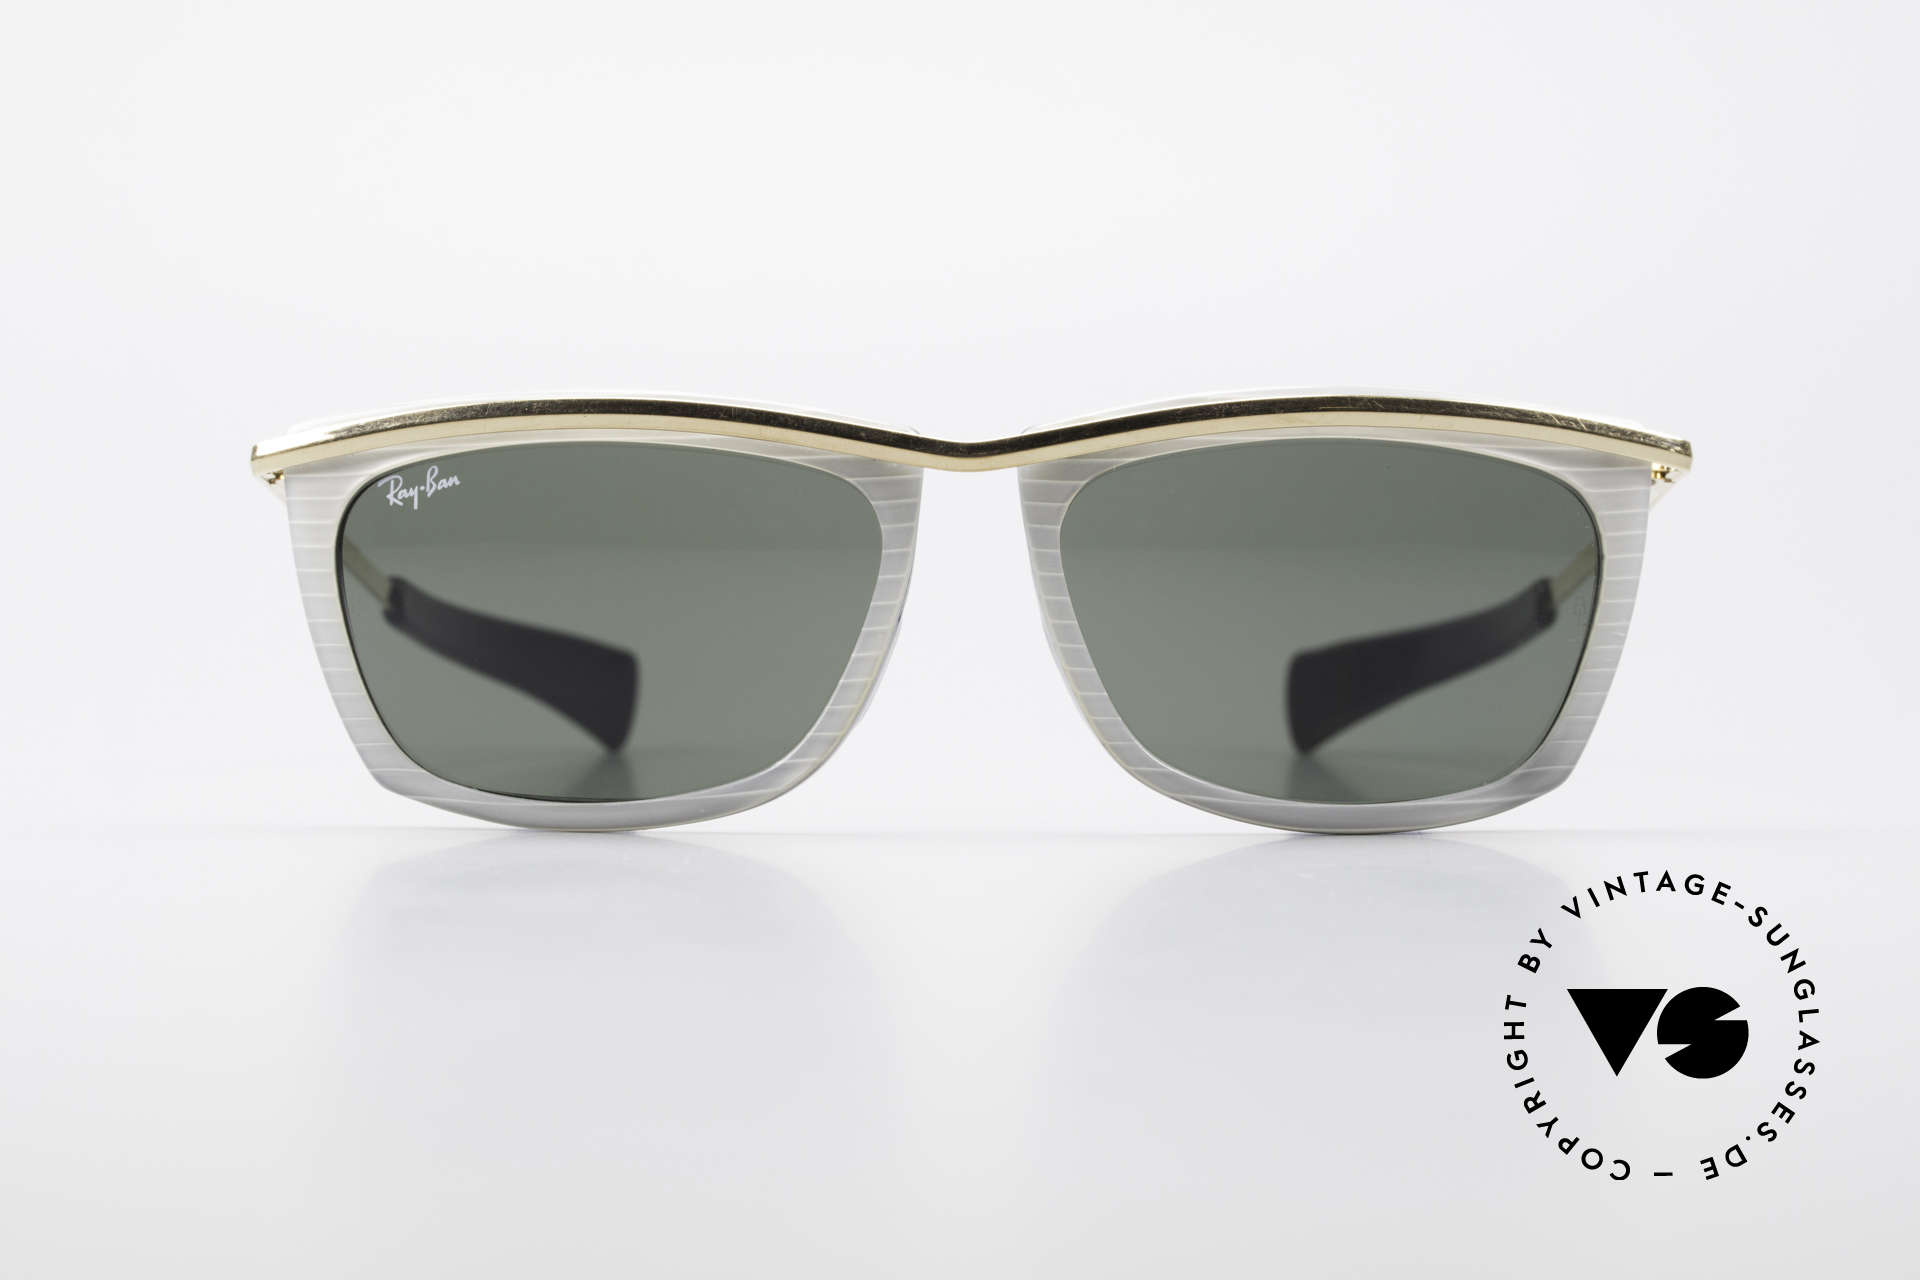 Ray Ban Olympian II B&L Ray-Ban Sunglasses USA, designer sunglasses of the 1980's by Ray Ban, USA, Made for Men and Women